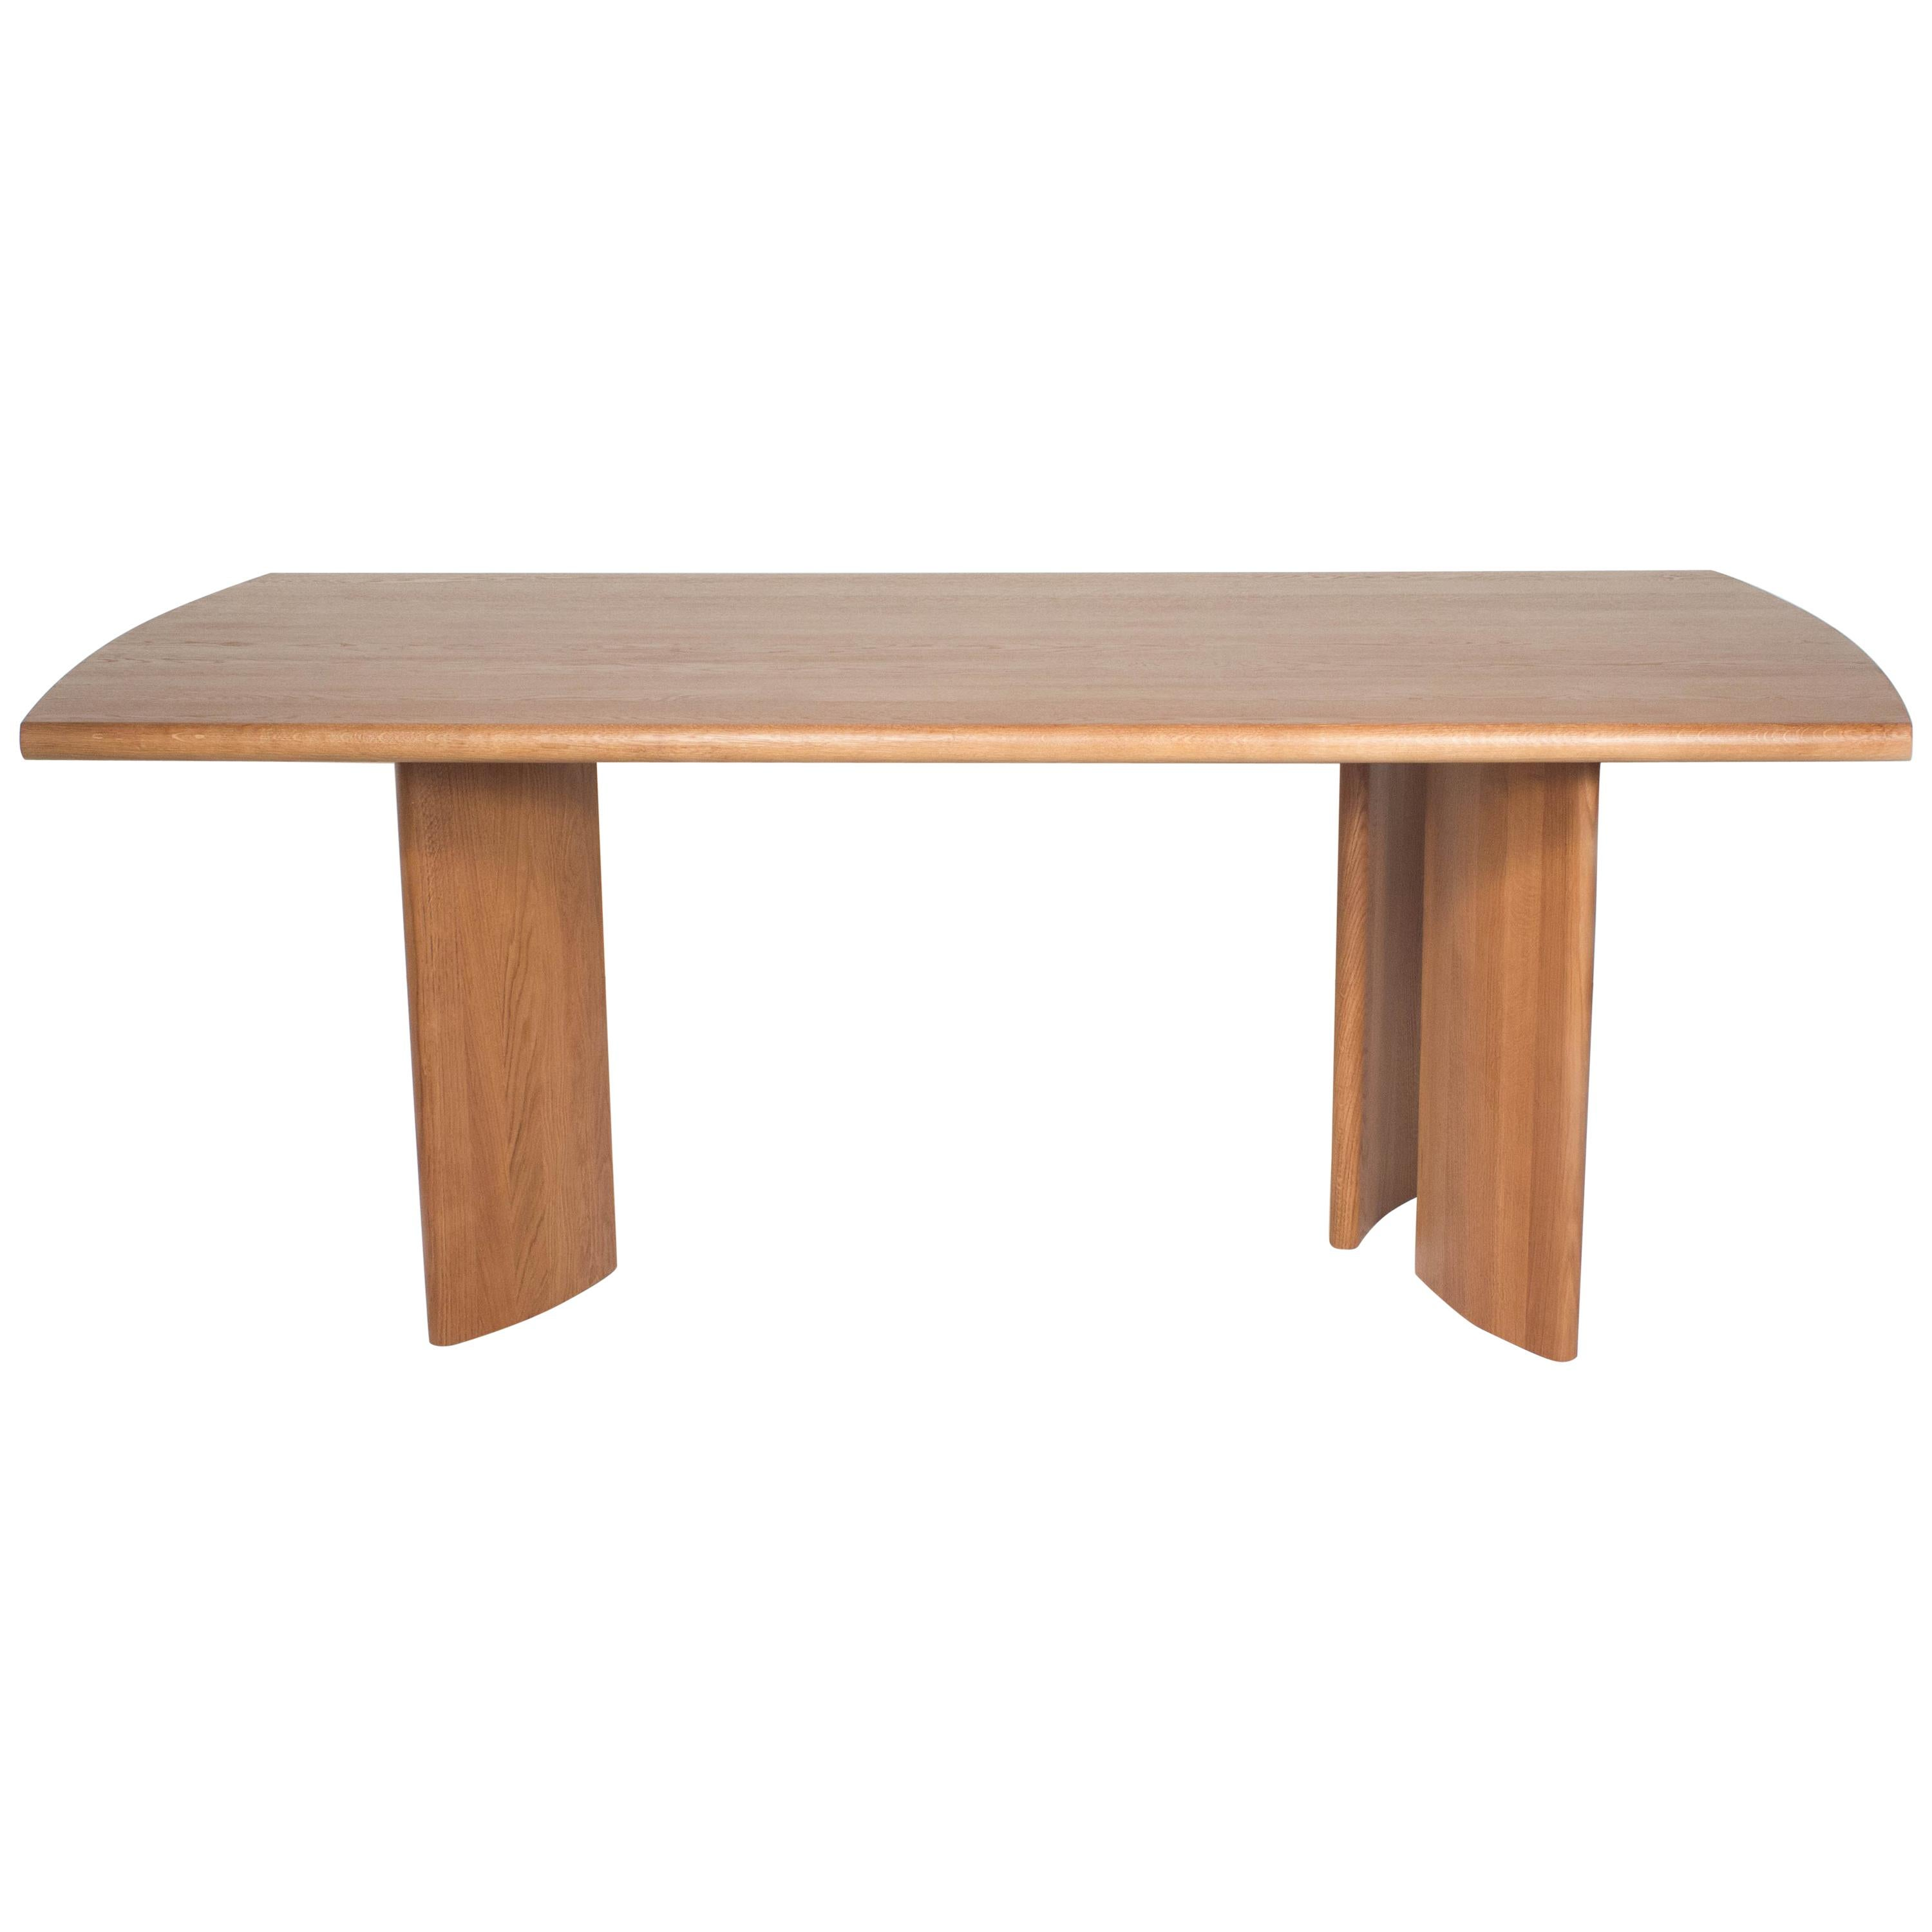 Crest Table by Sun at Six, Sienna, Minimalist Dining Table in Wood